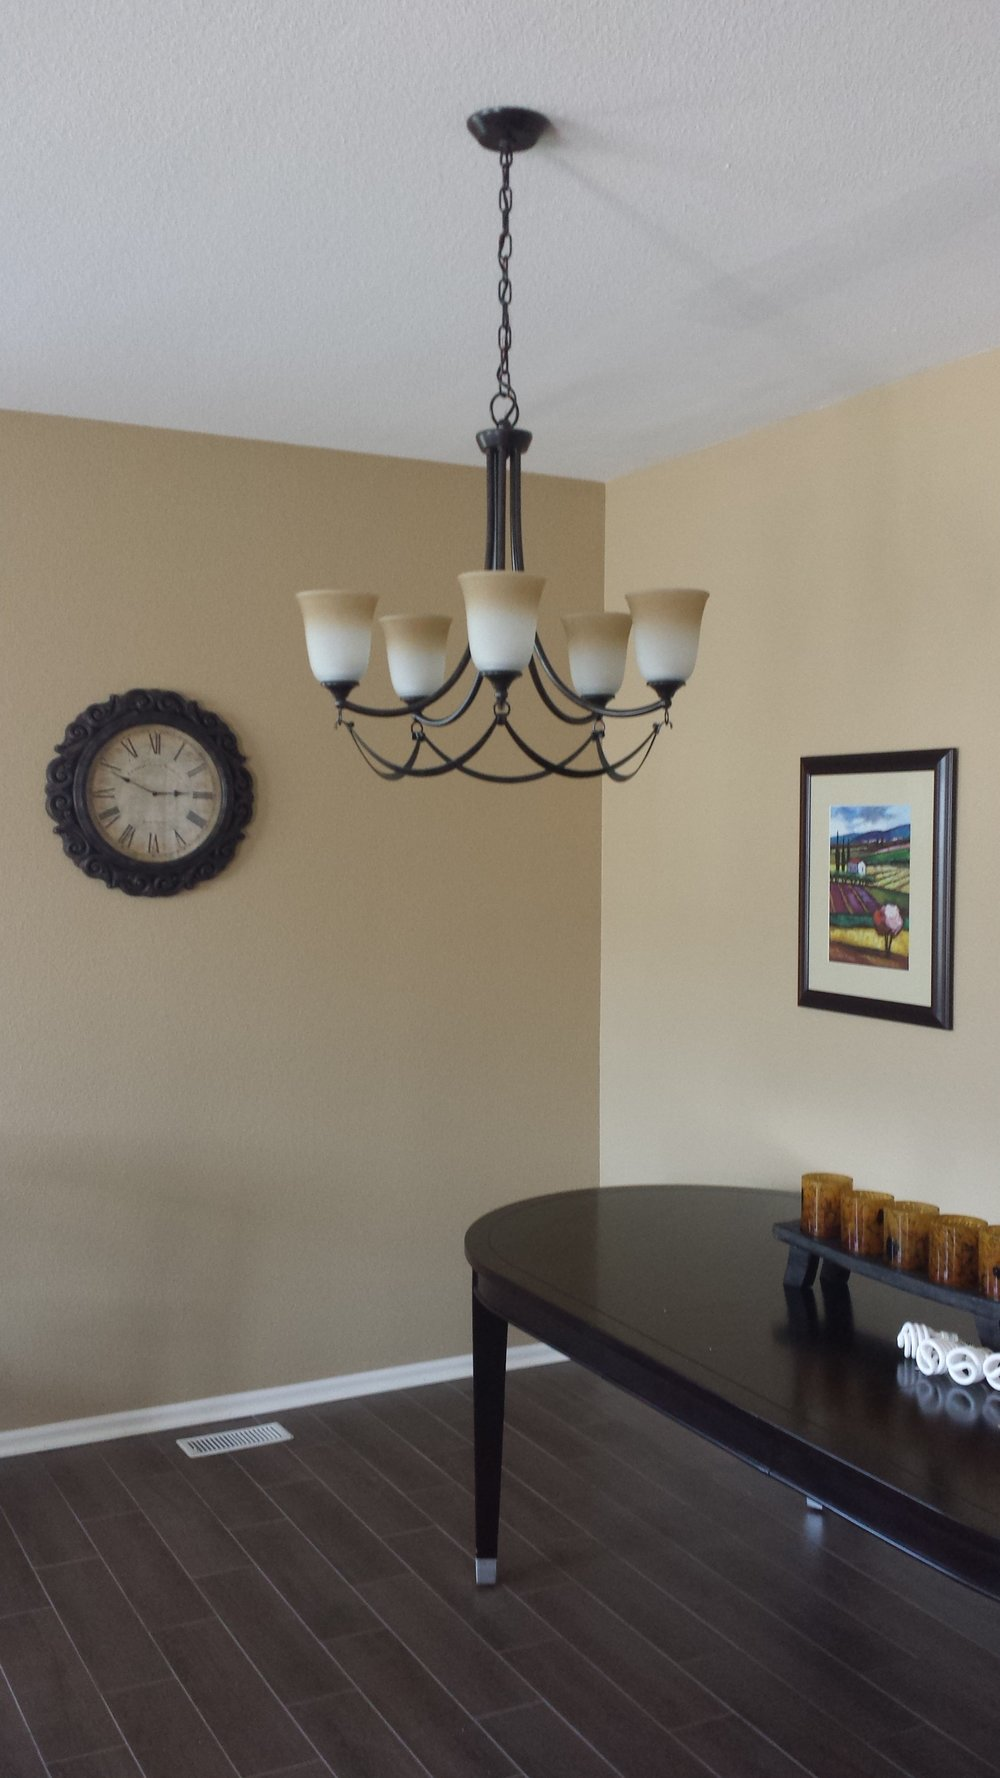 New dining room light fixture